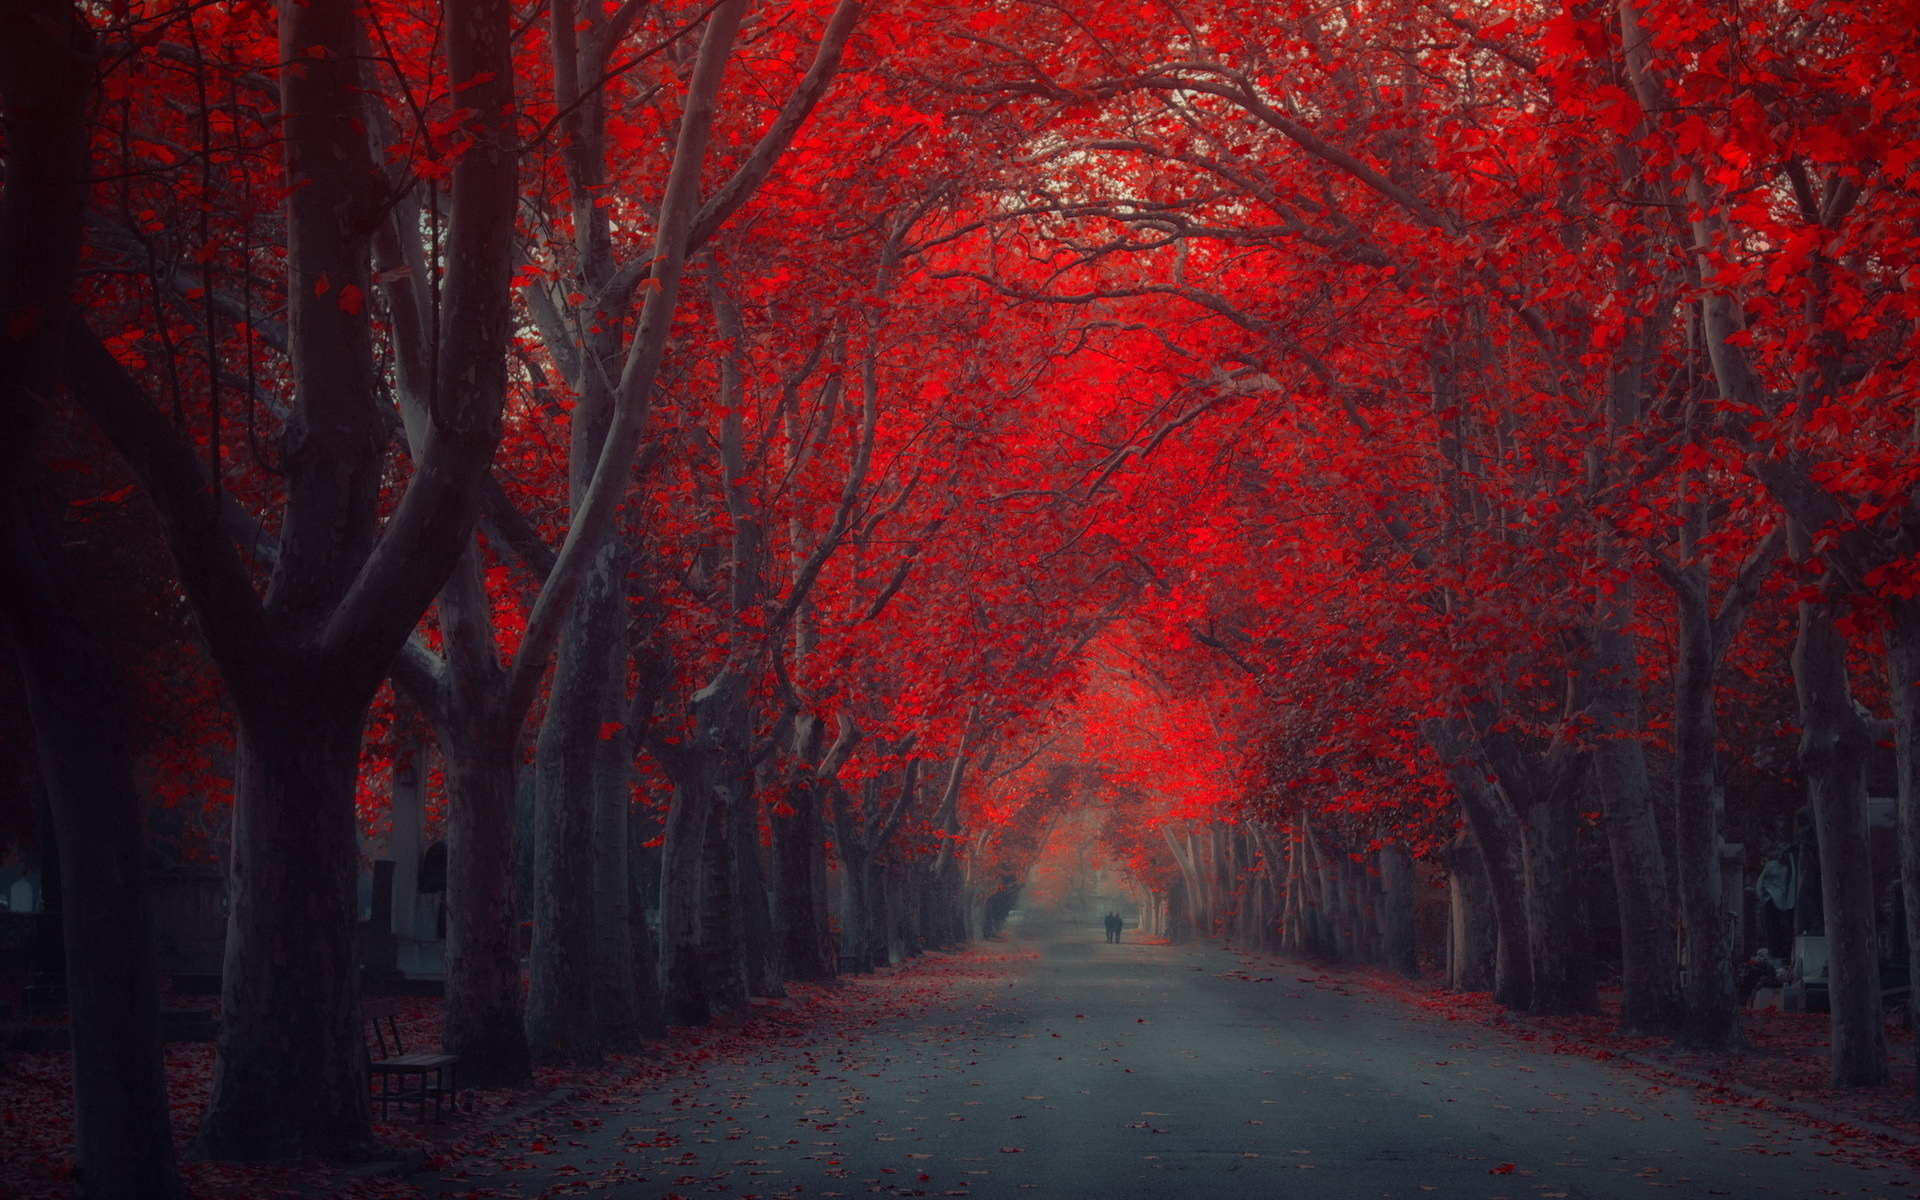 Black Red Love Wallpaper : Nature landscapes roads path trees park forests leaves autumn fall seasons people couple love ...